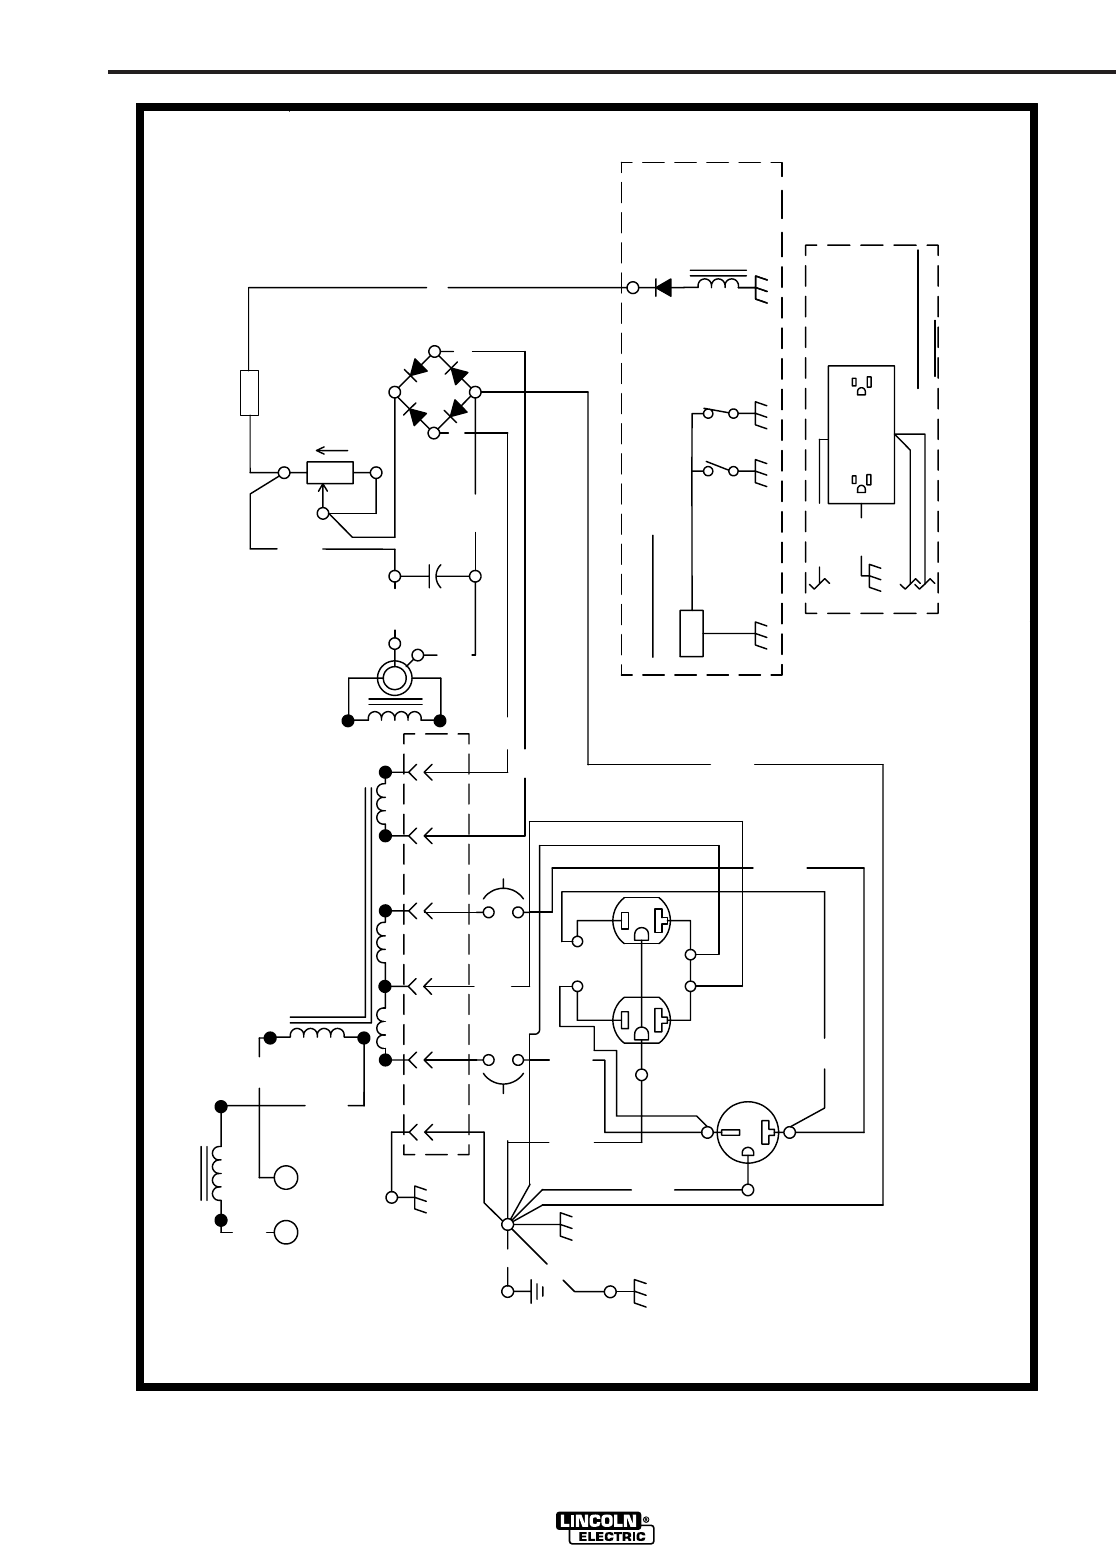 8dce7b58 fa39 4a70 8239 bcaa489a27c8 bg2e page 46 of lincoln power supply power arc 4000 user guide lincoln electric wiring diagram at bakdesigns.co